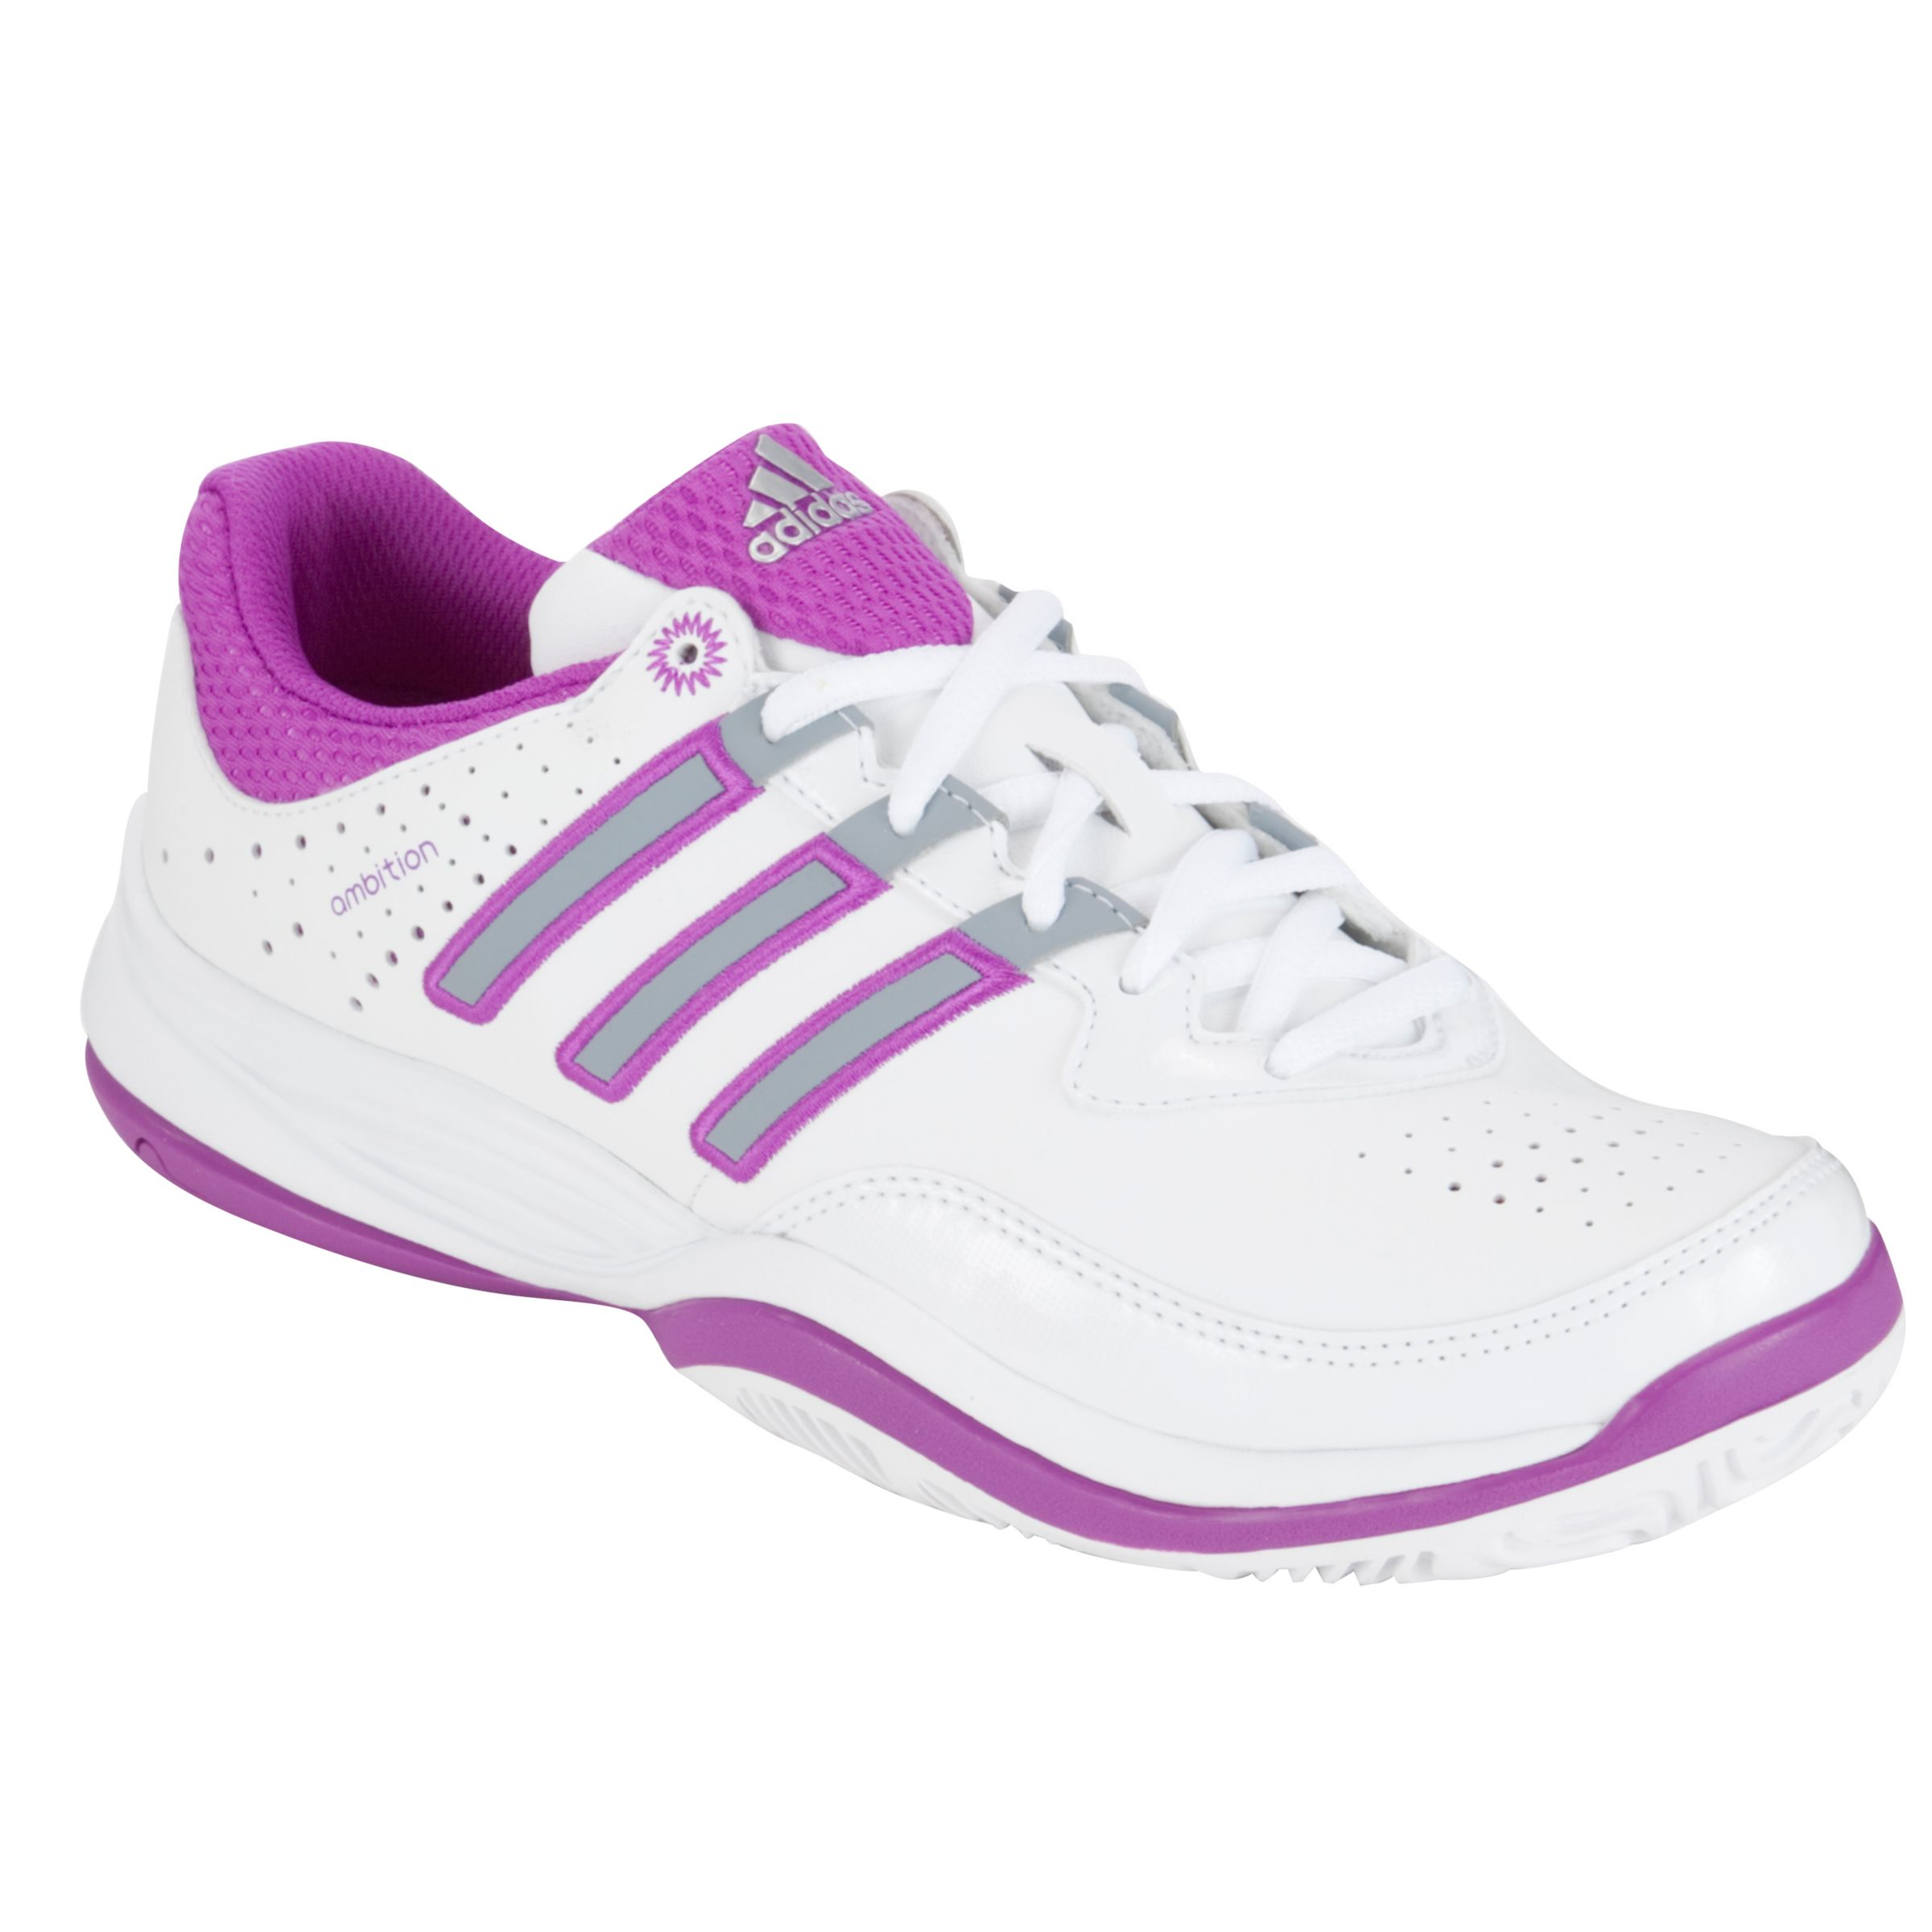 Adidas Ambition Women's Court Shoes, Running White/Black